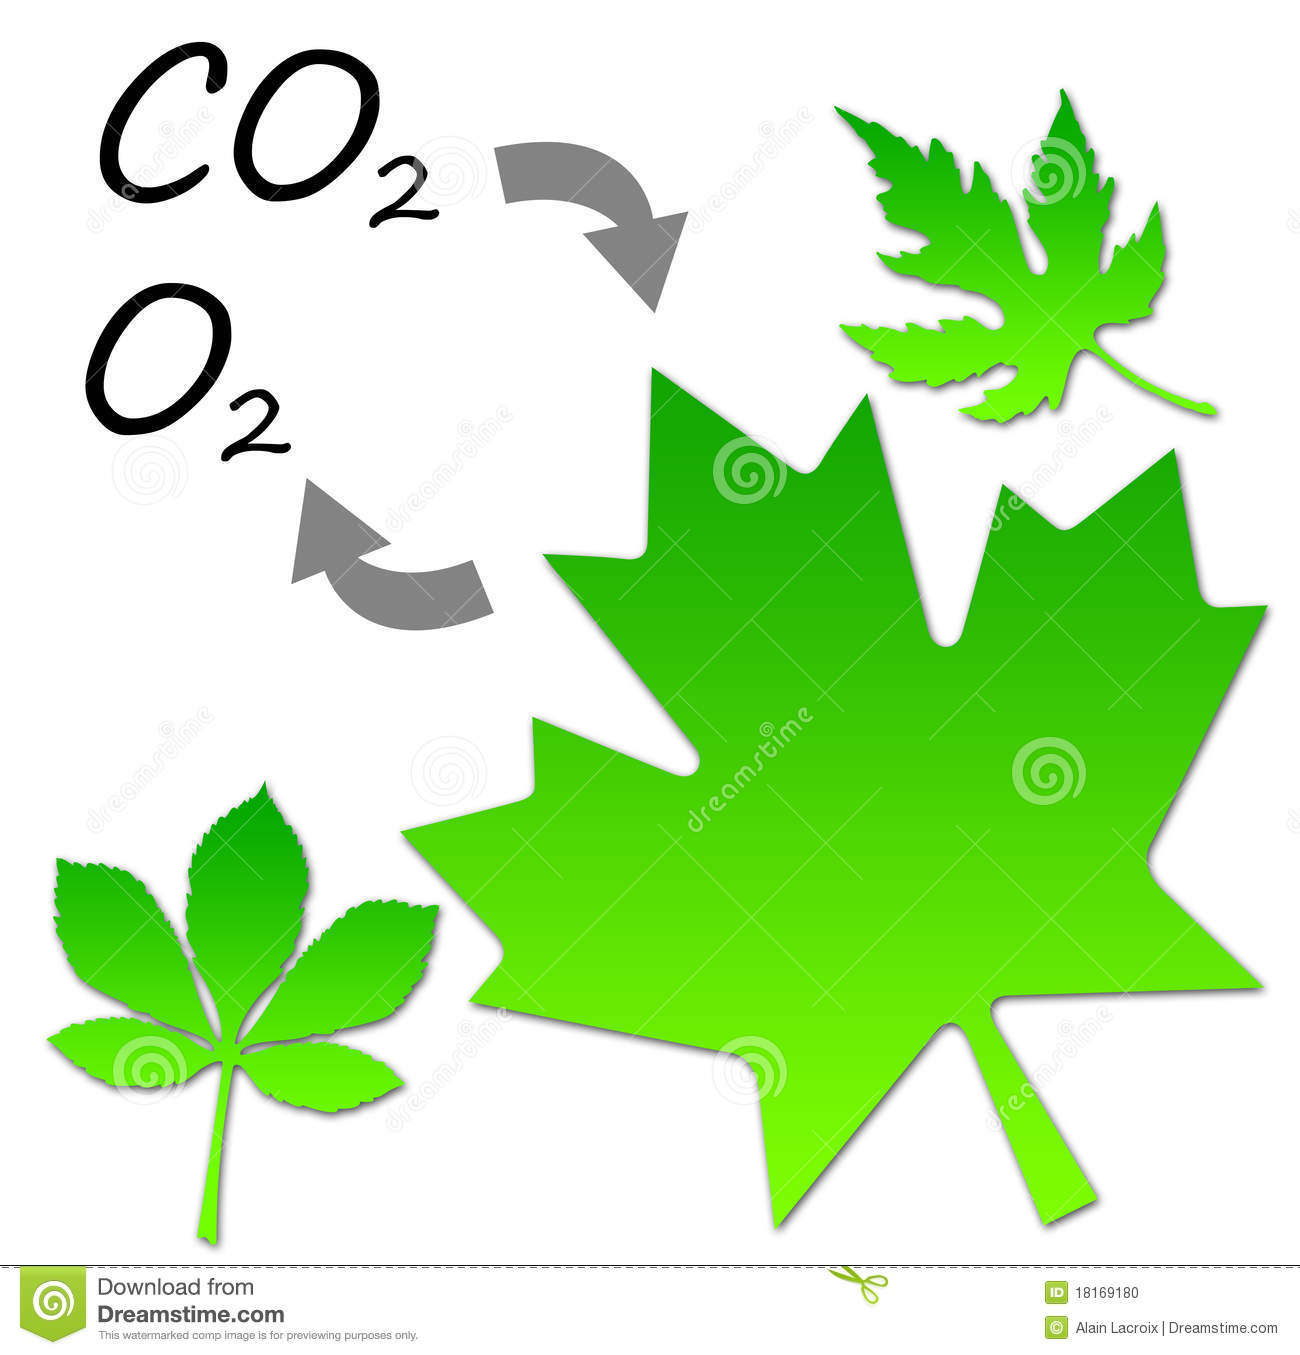 Forming Oxygen And Absorbing Carbon Dioxide Through Photosynthesis